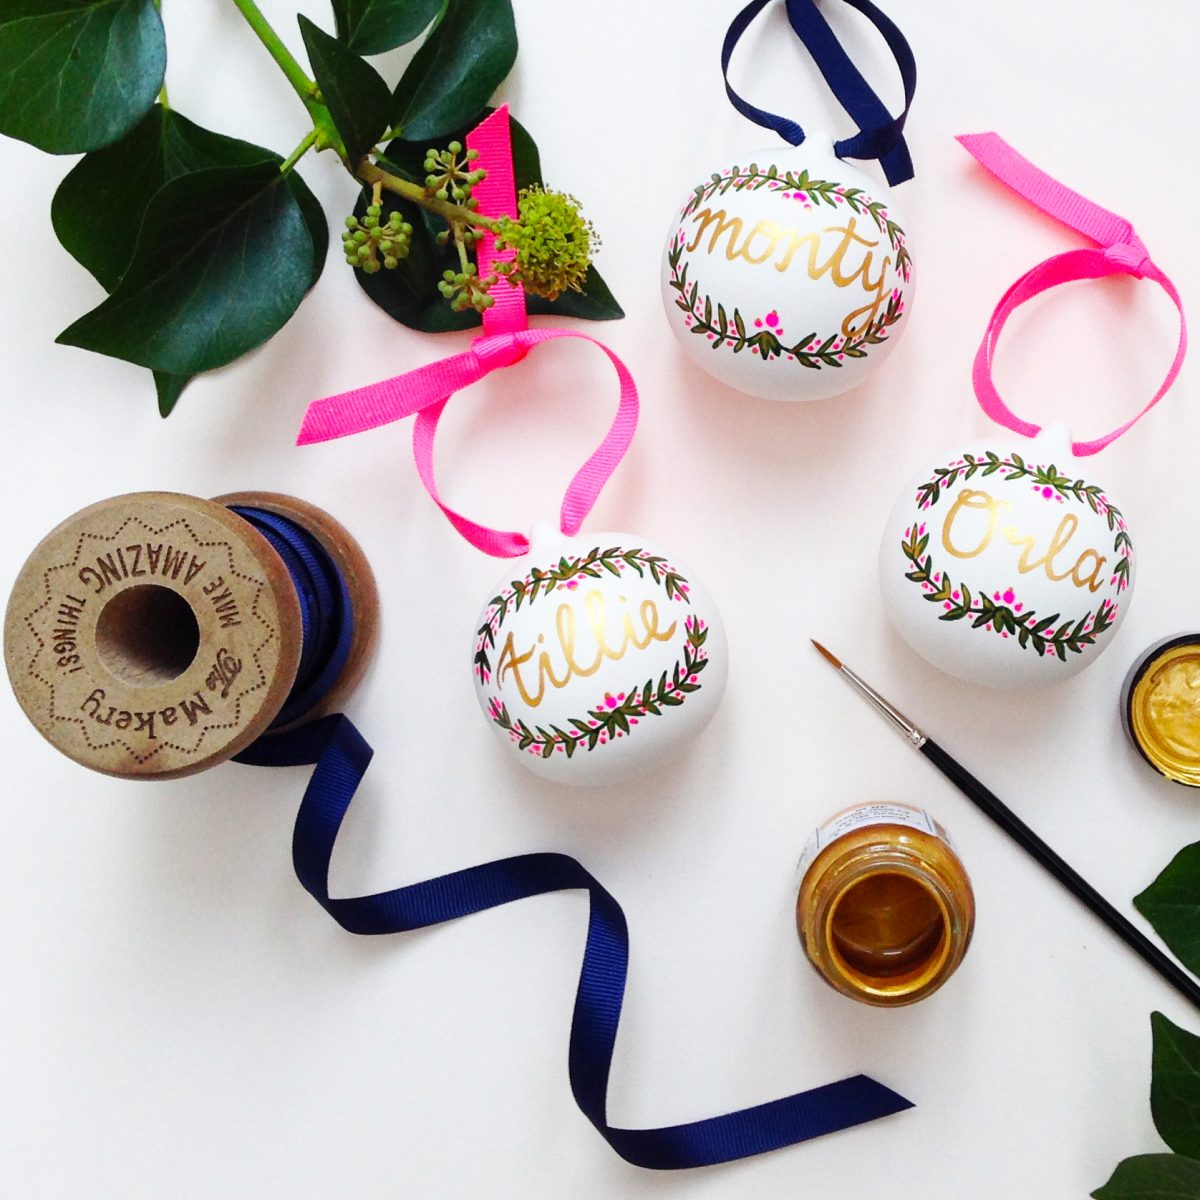 Free Festive hand painted bauble workshop